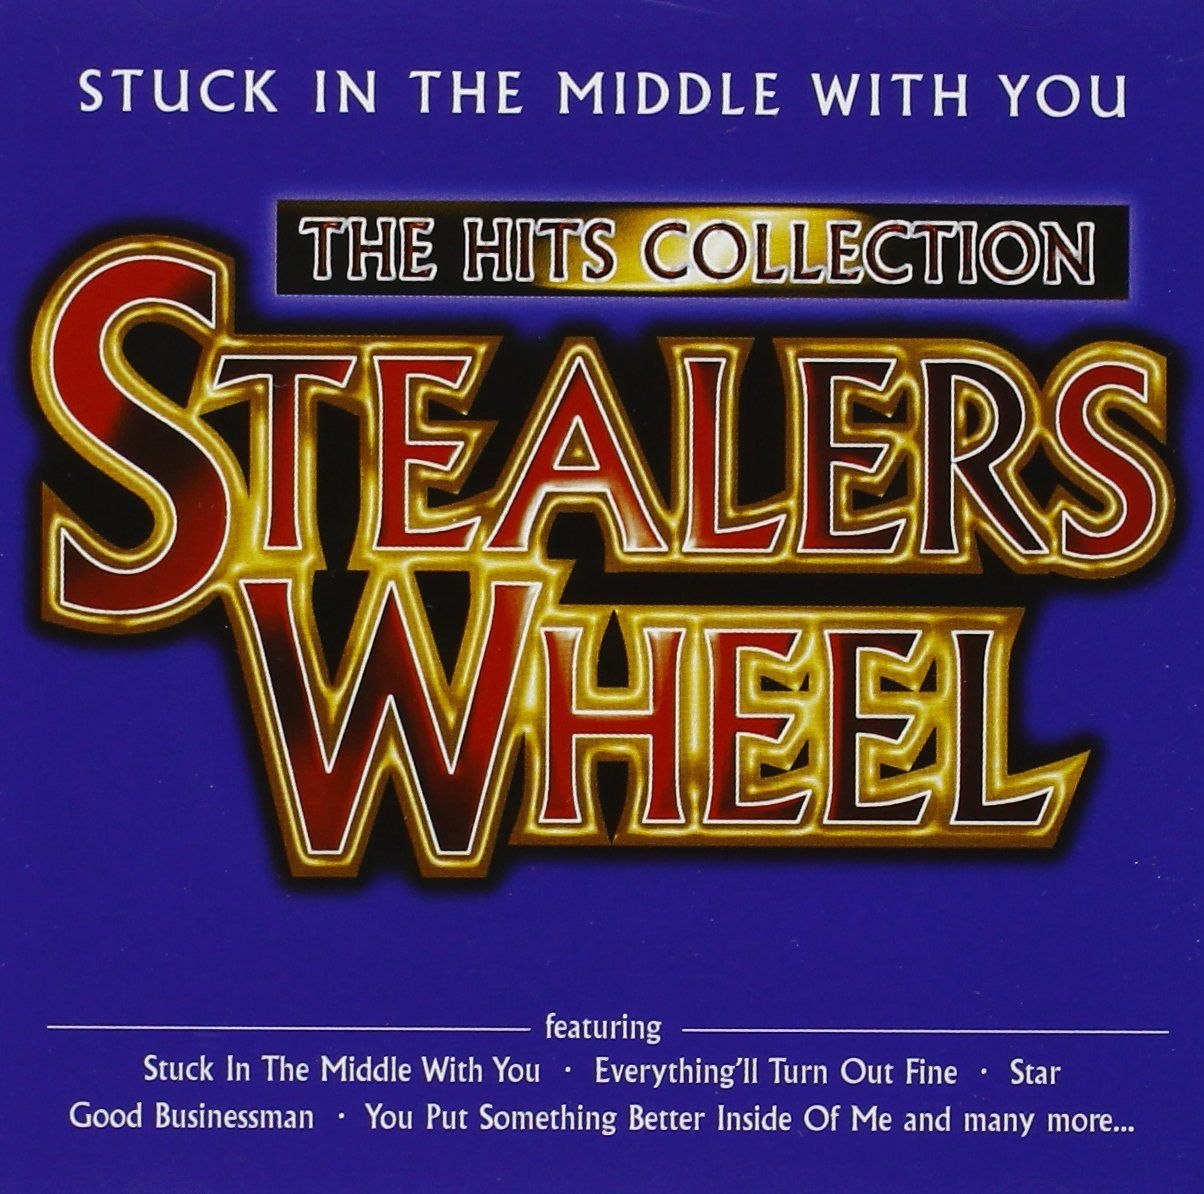 Stealers Wheel - Stuck In The Middle With You...